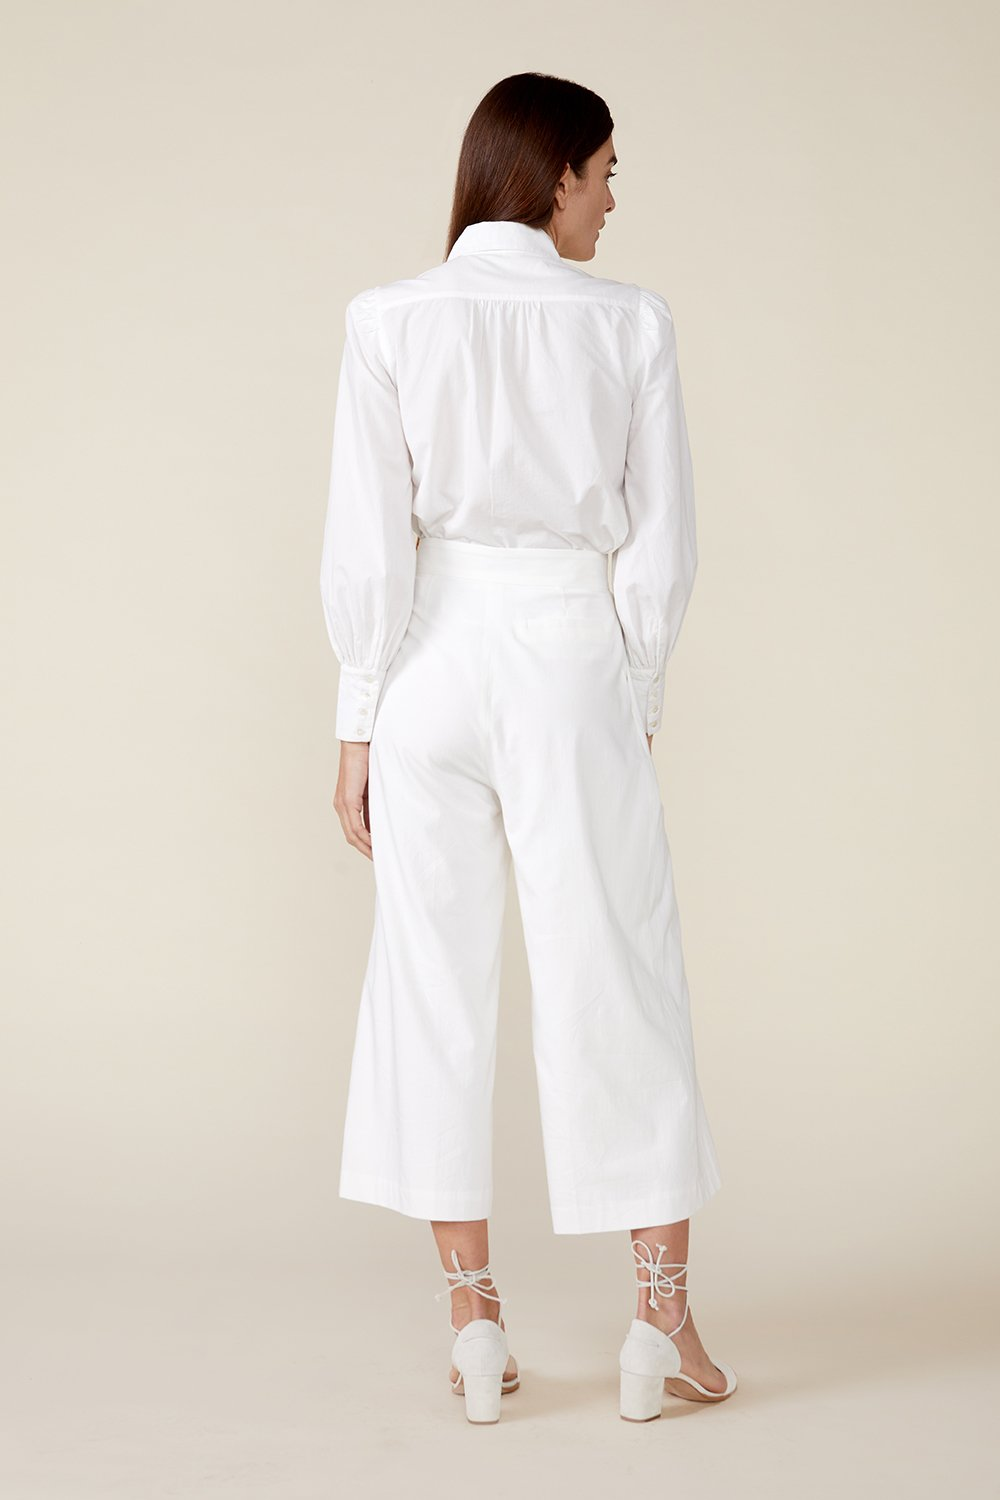 VITA BLOUSE, WHITE by St. Roche - 3